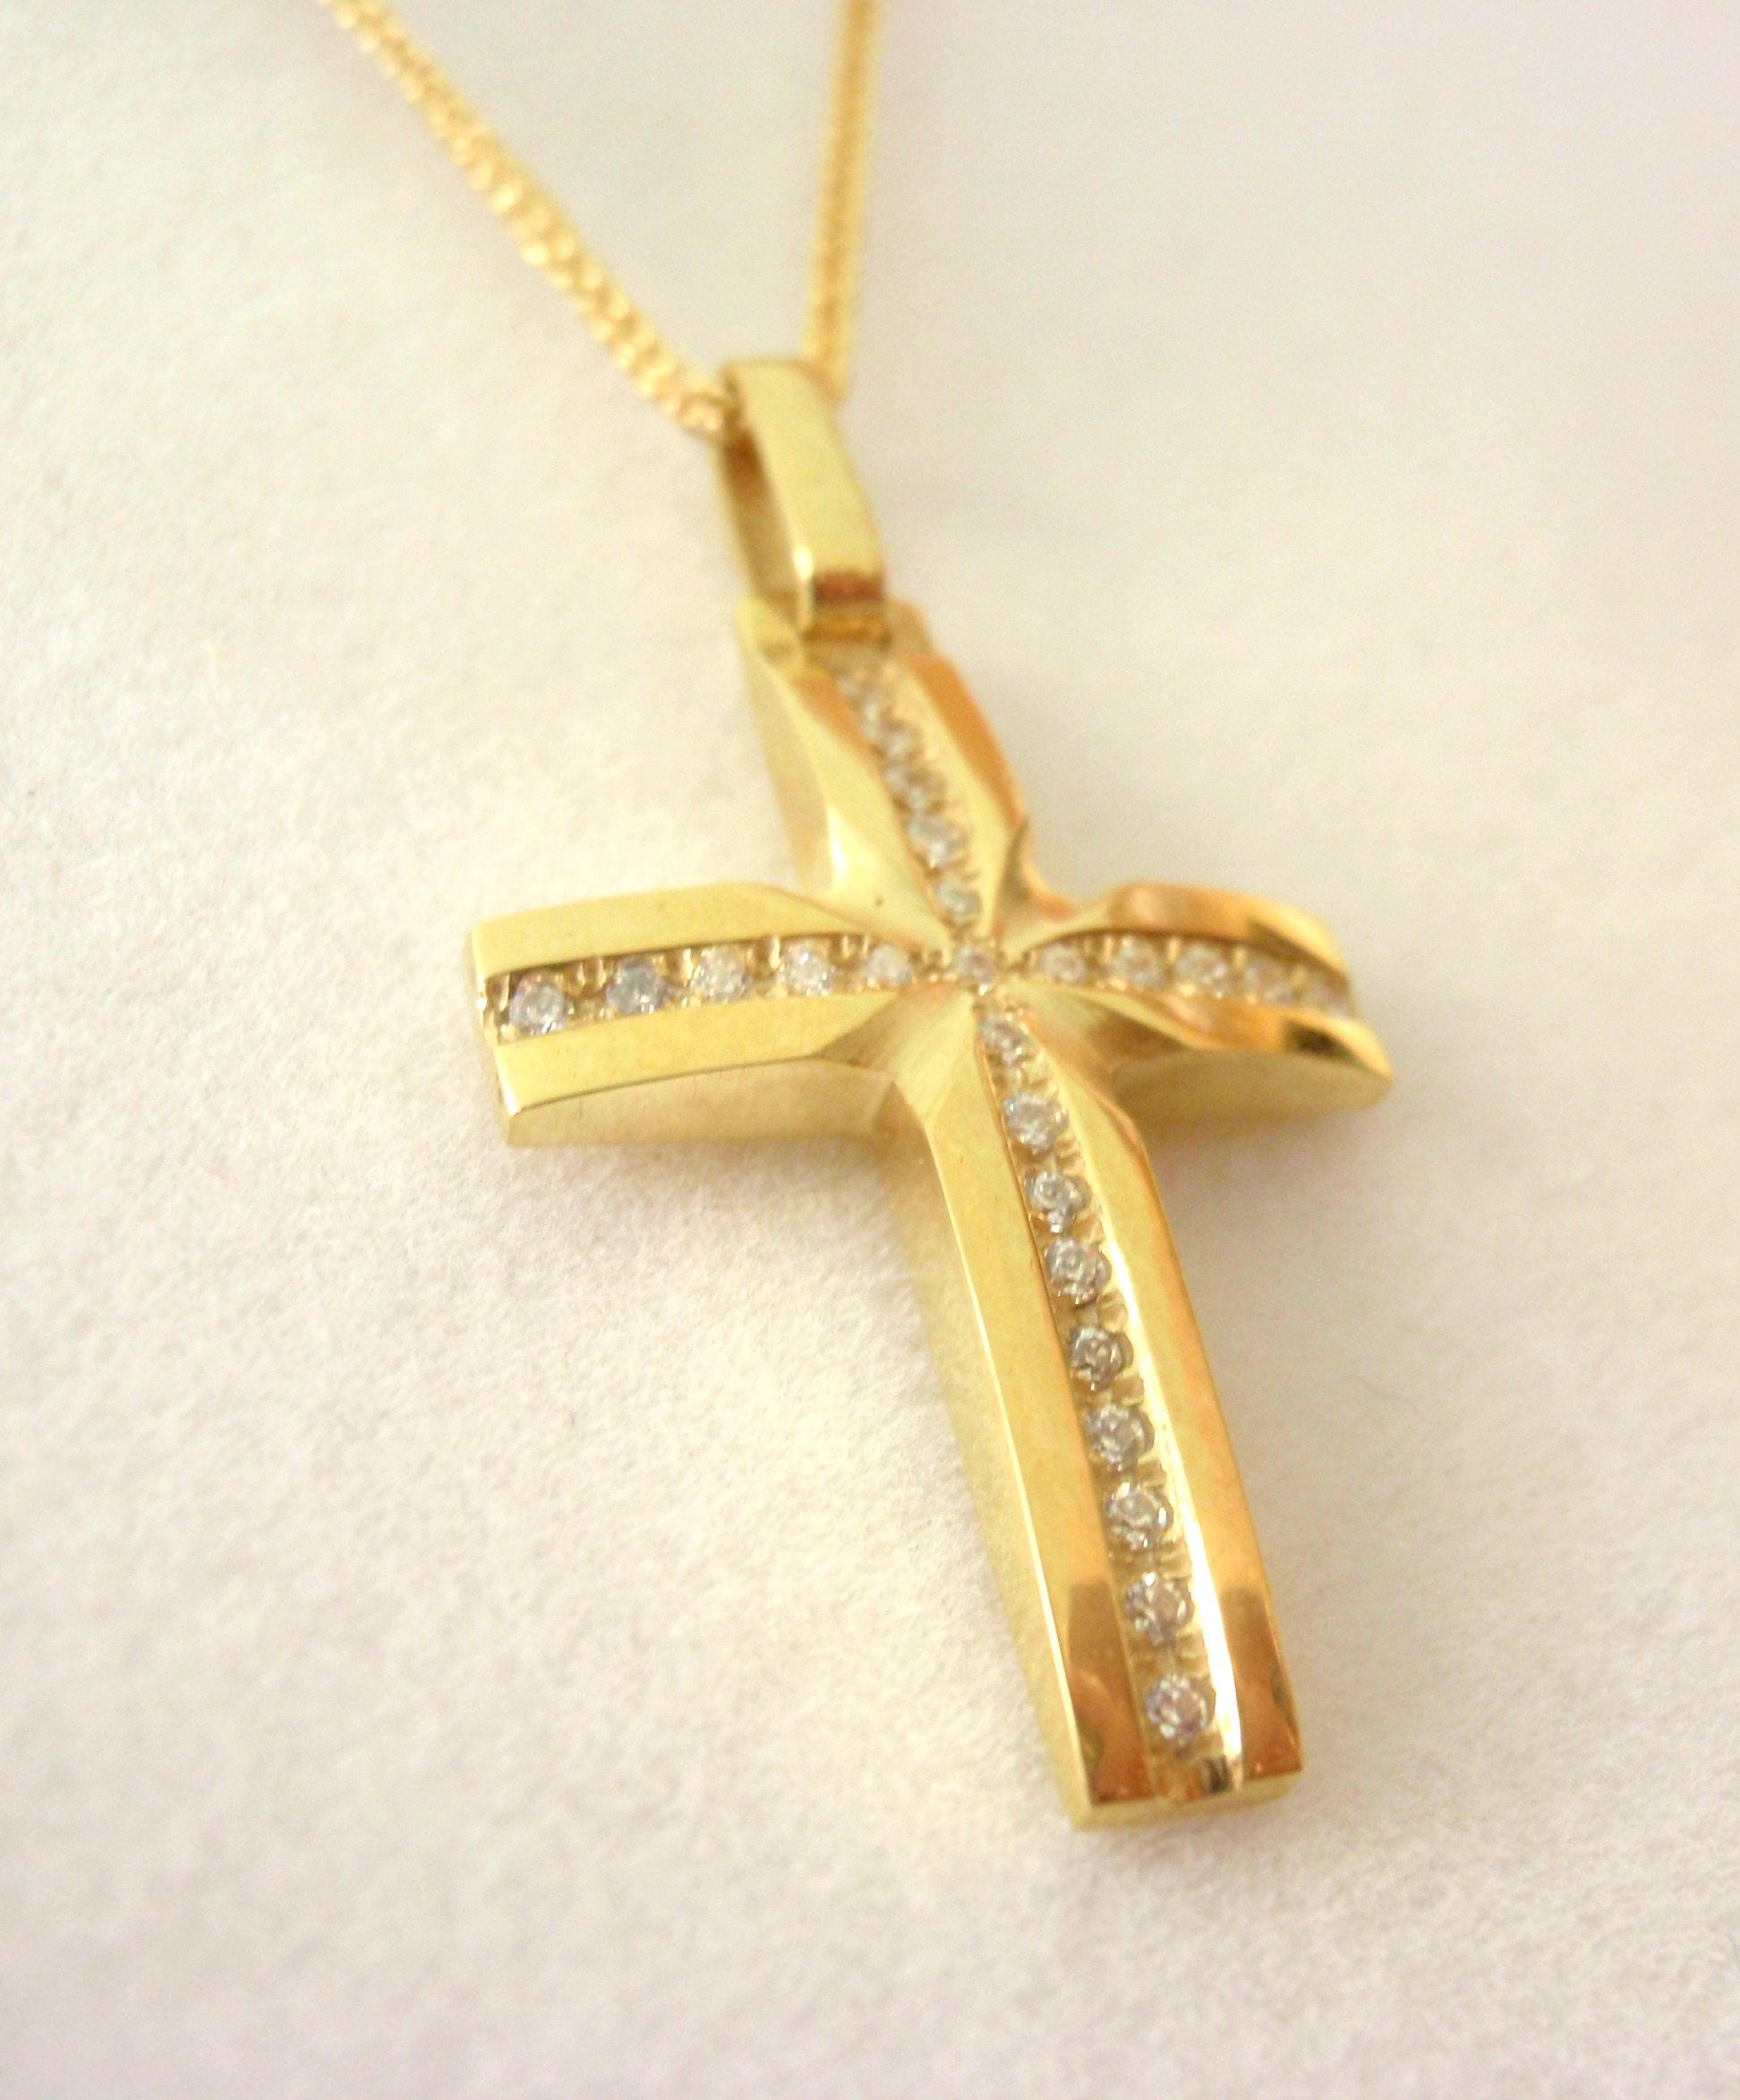 14k gold cross baptism cross pendant solid golden cross relicious 14k gold cross baptism cross pendant solid golden cross relicious jewelry gold mozeypictures Images